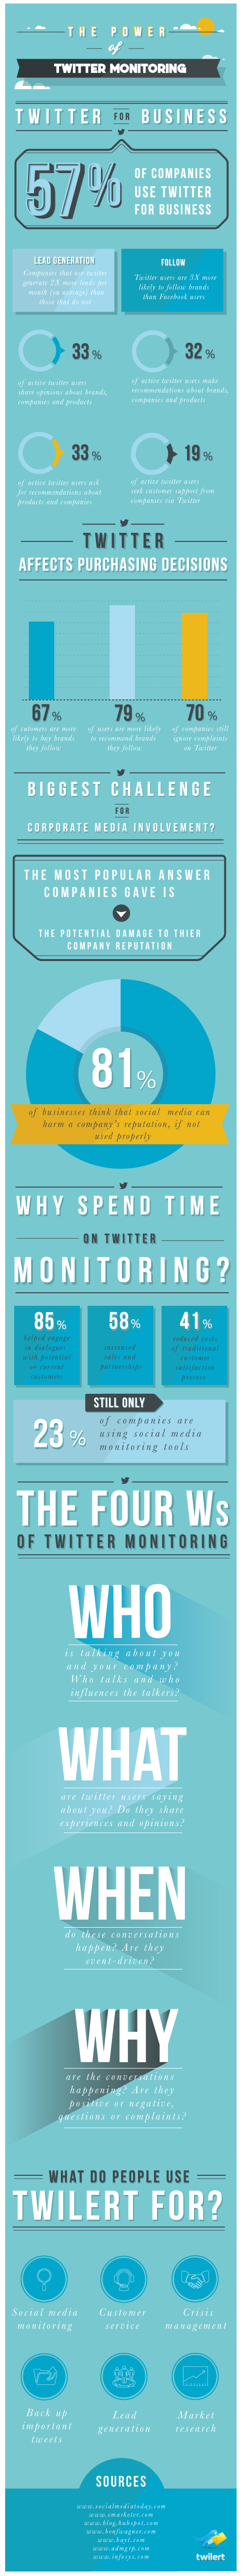 Twitter For Business - The Power of Monitoring [INFOGRAPHIC]